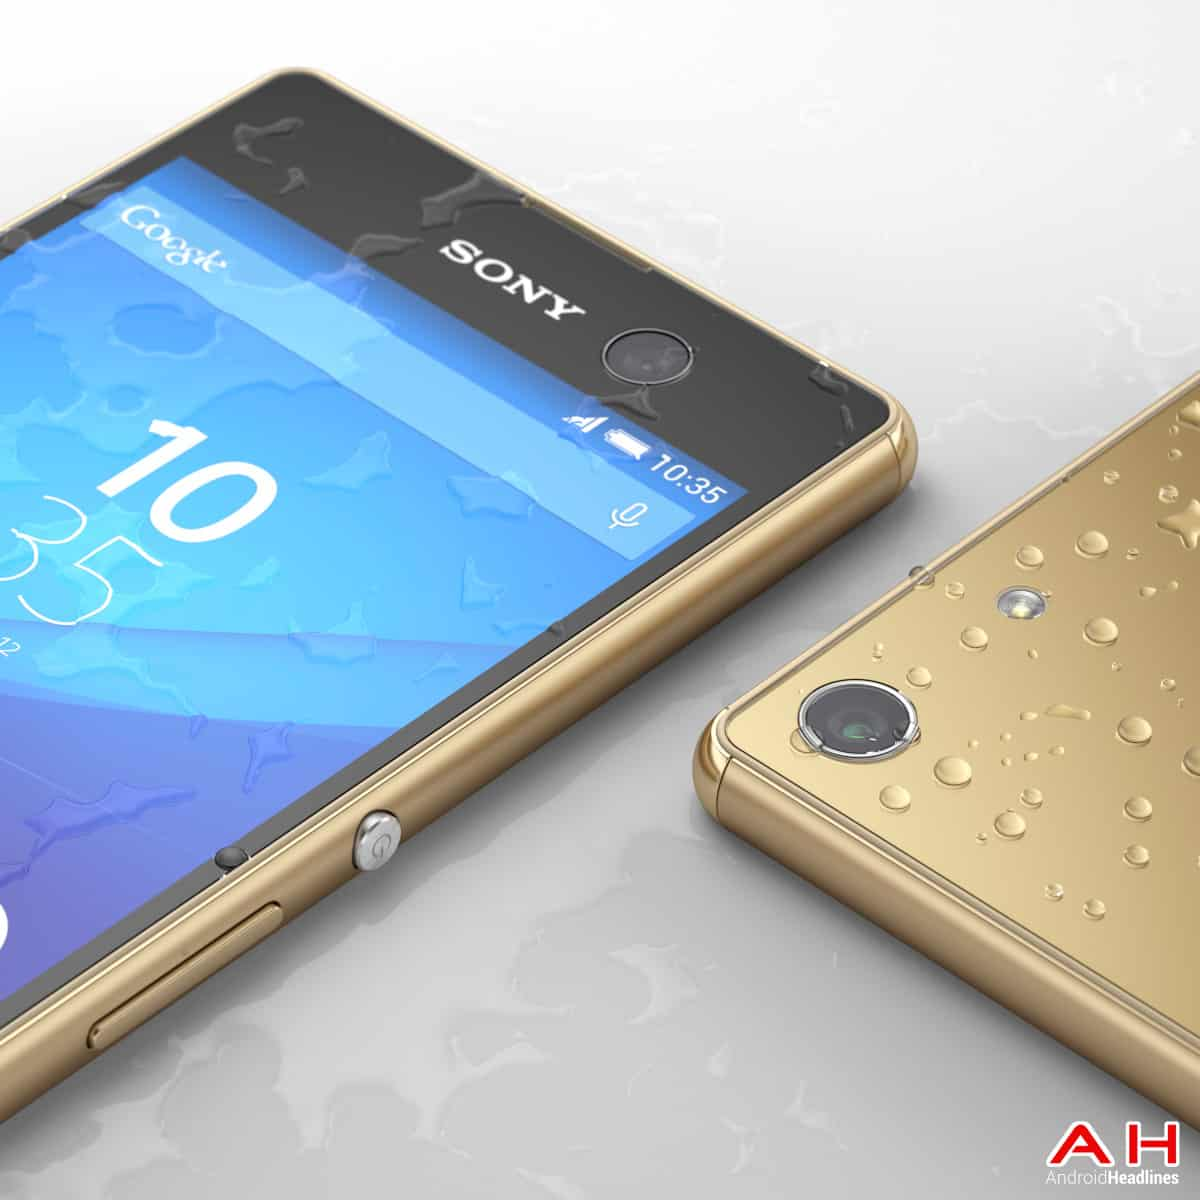 AH Sony Xperia M5 Press Images-8